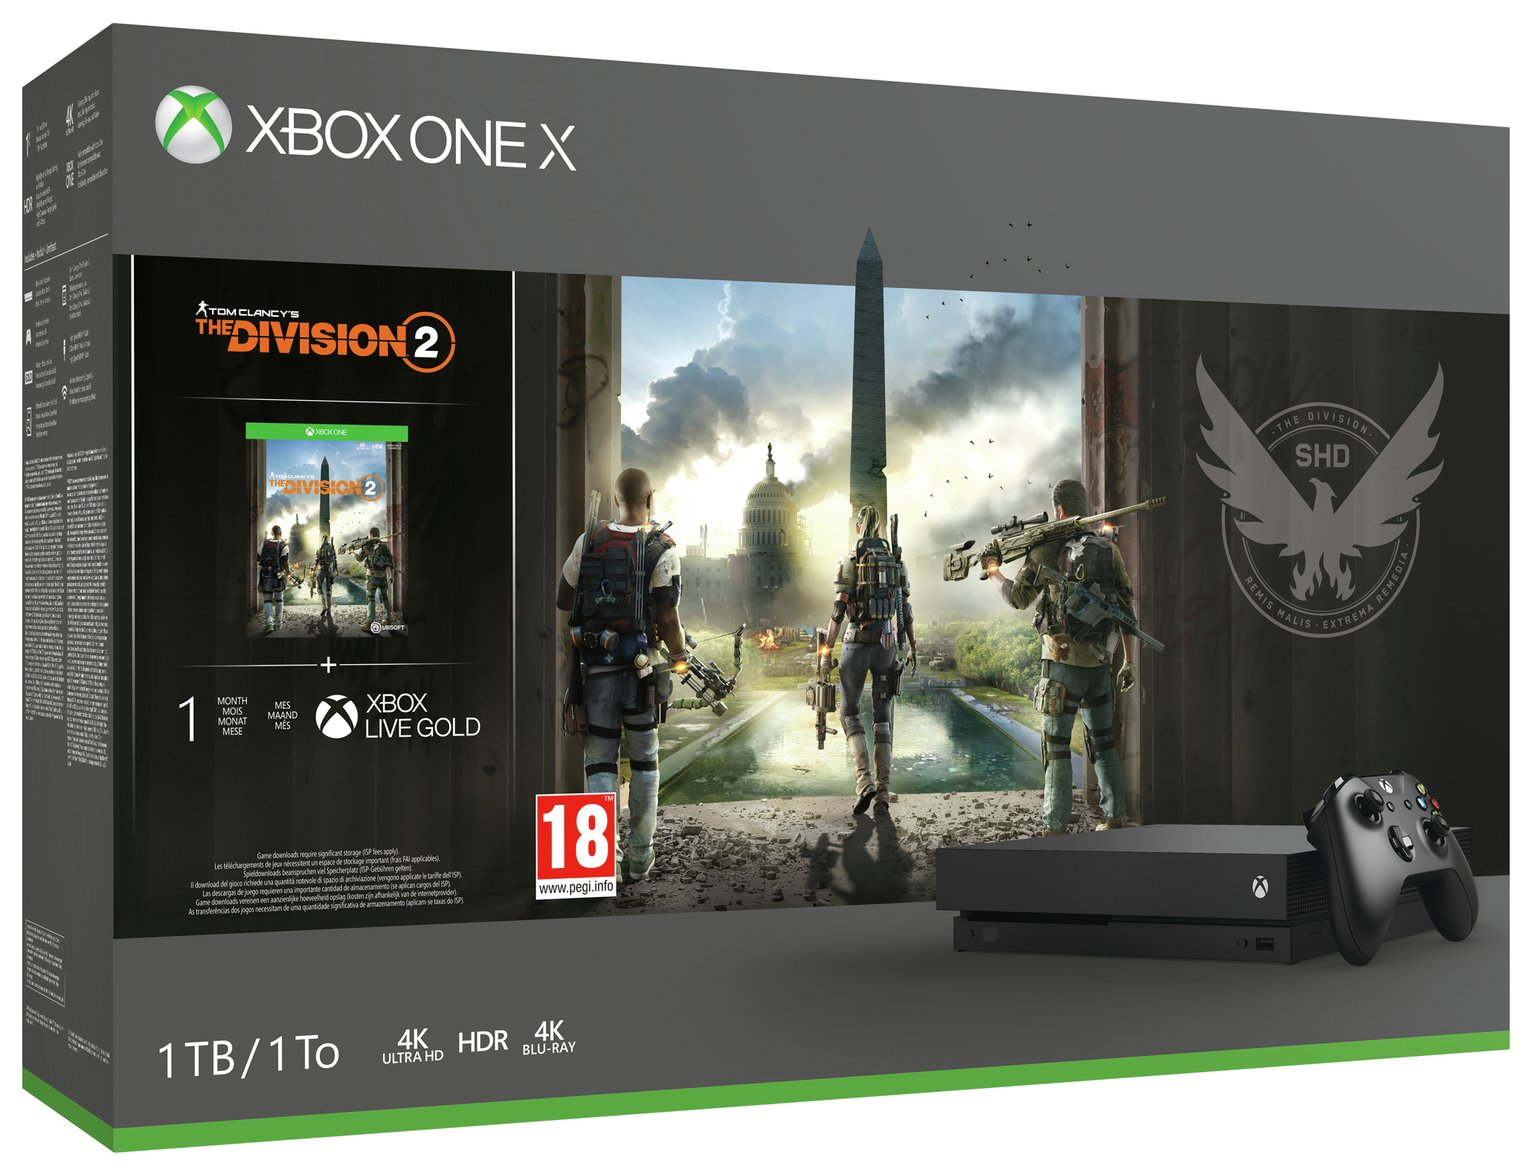 Xbox One X 1TB Console & The Division 2 Bundle